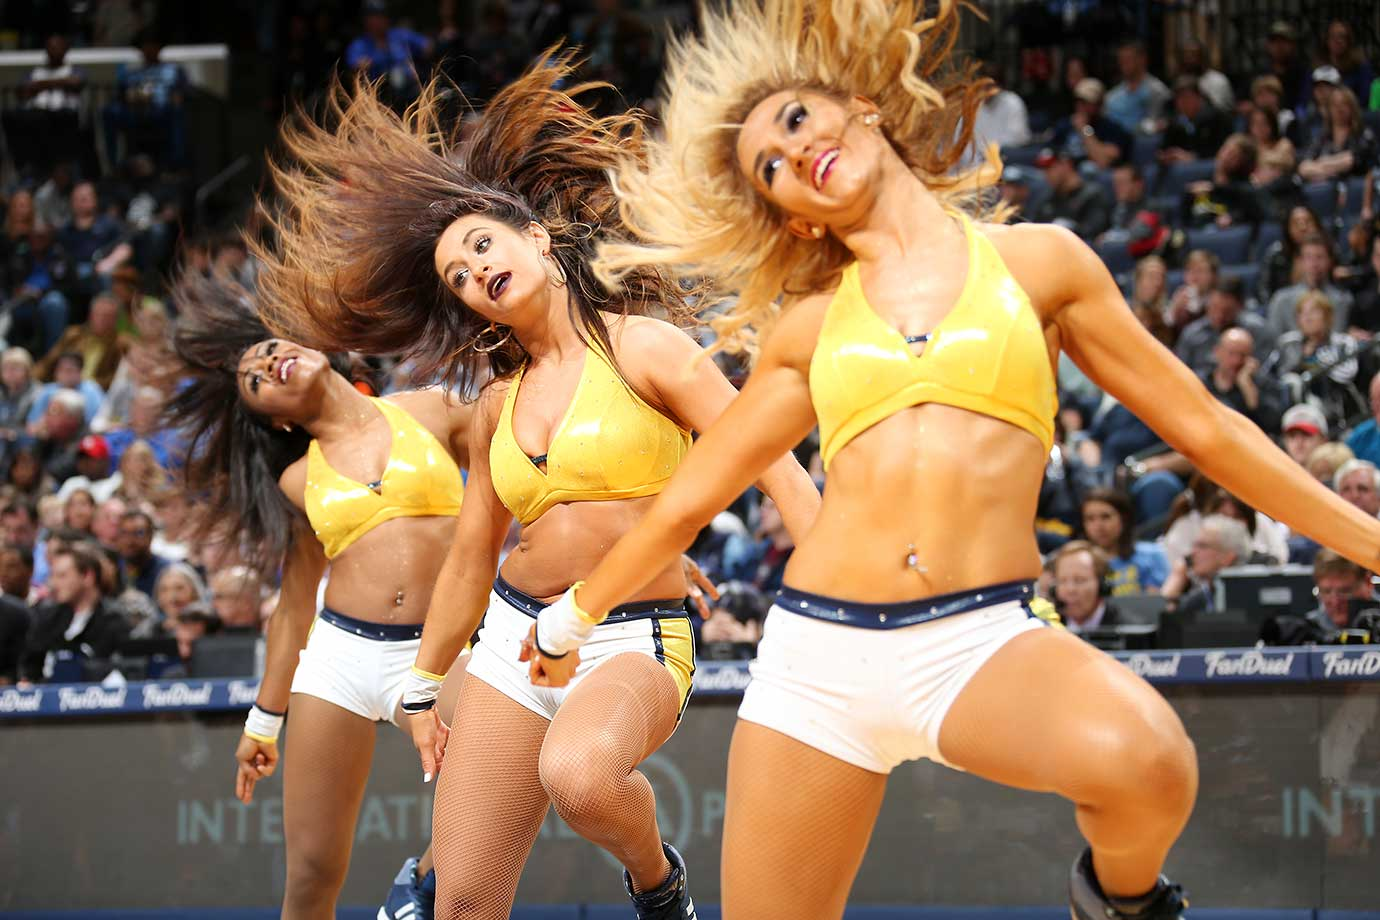 The Memphis Grizzlies dance team performs during the game against the Sacramento Kings in Tennessee.